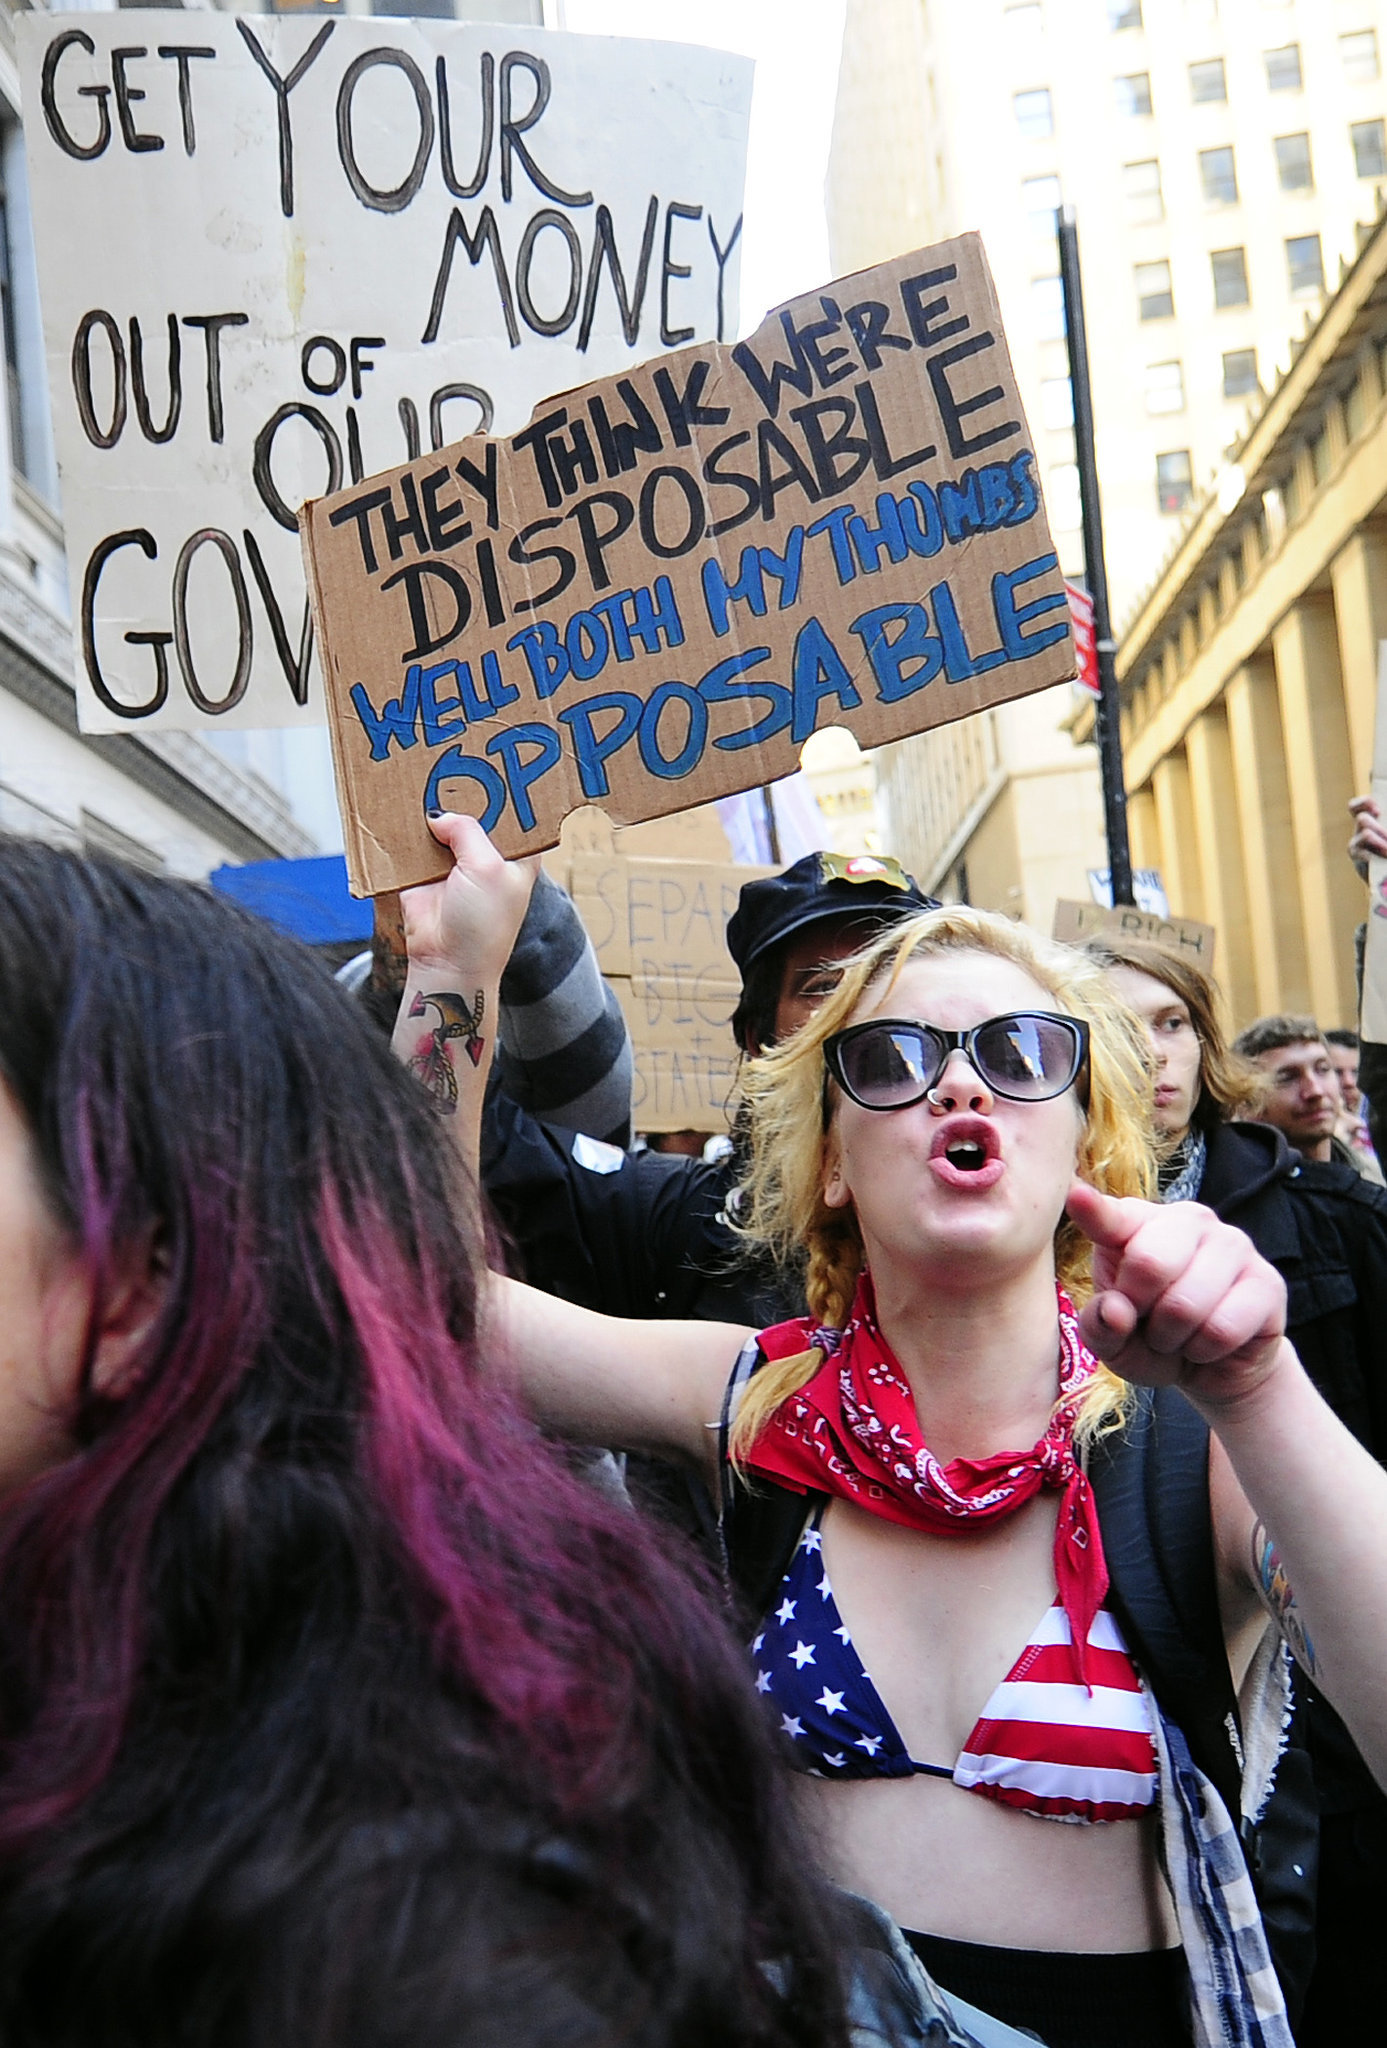 Occupy Wall Street in US, 2011